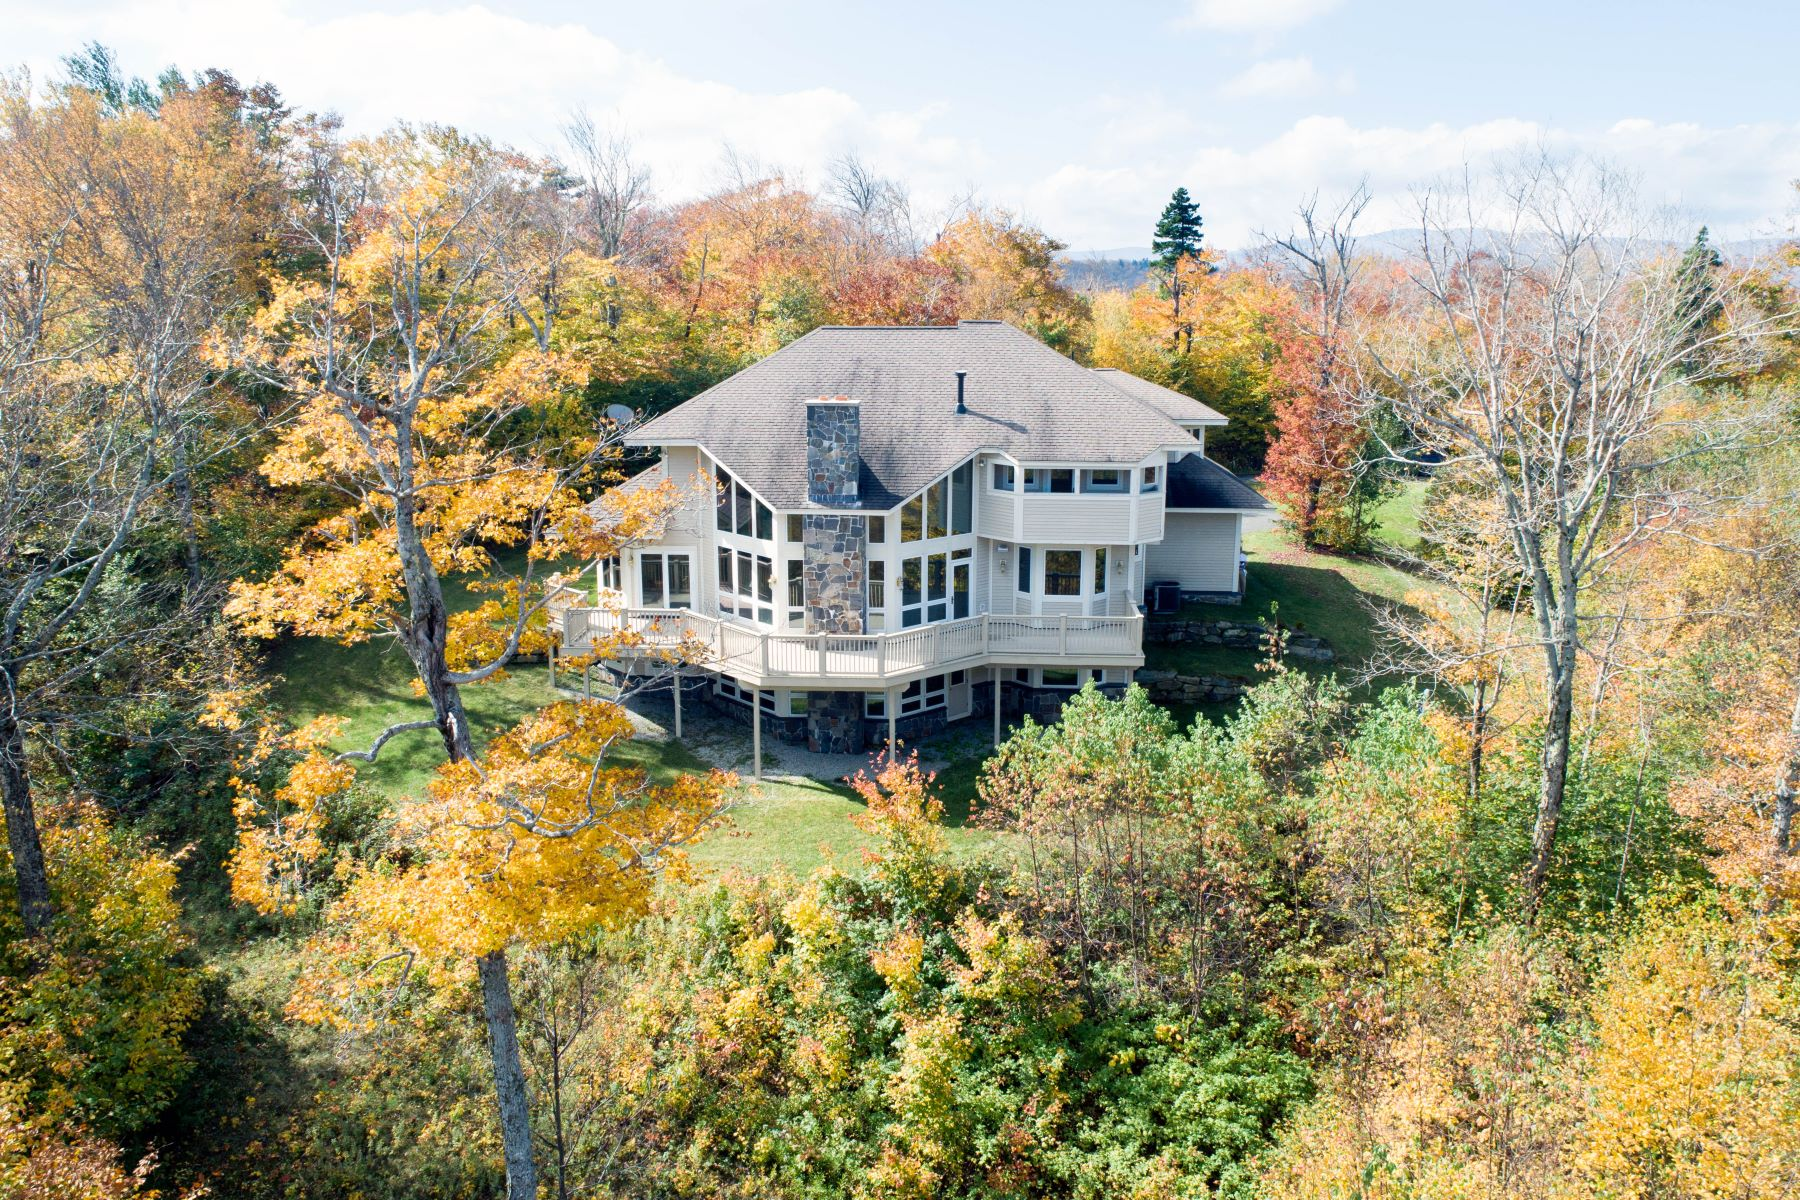 Single Family Home for Sale at 873 Stratton Arlington Road, Stratton 873 Stratton Arlington Rd Stratton, Vermont 05155 United States